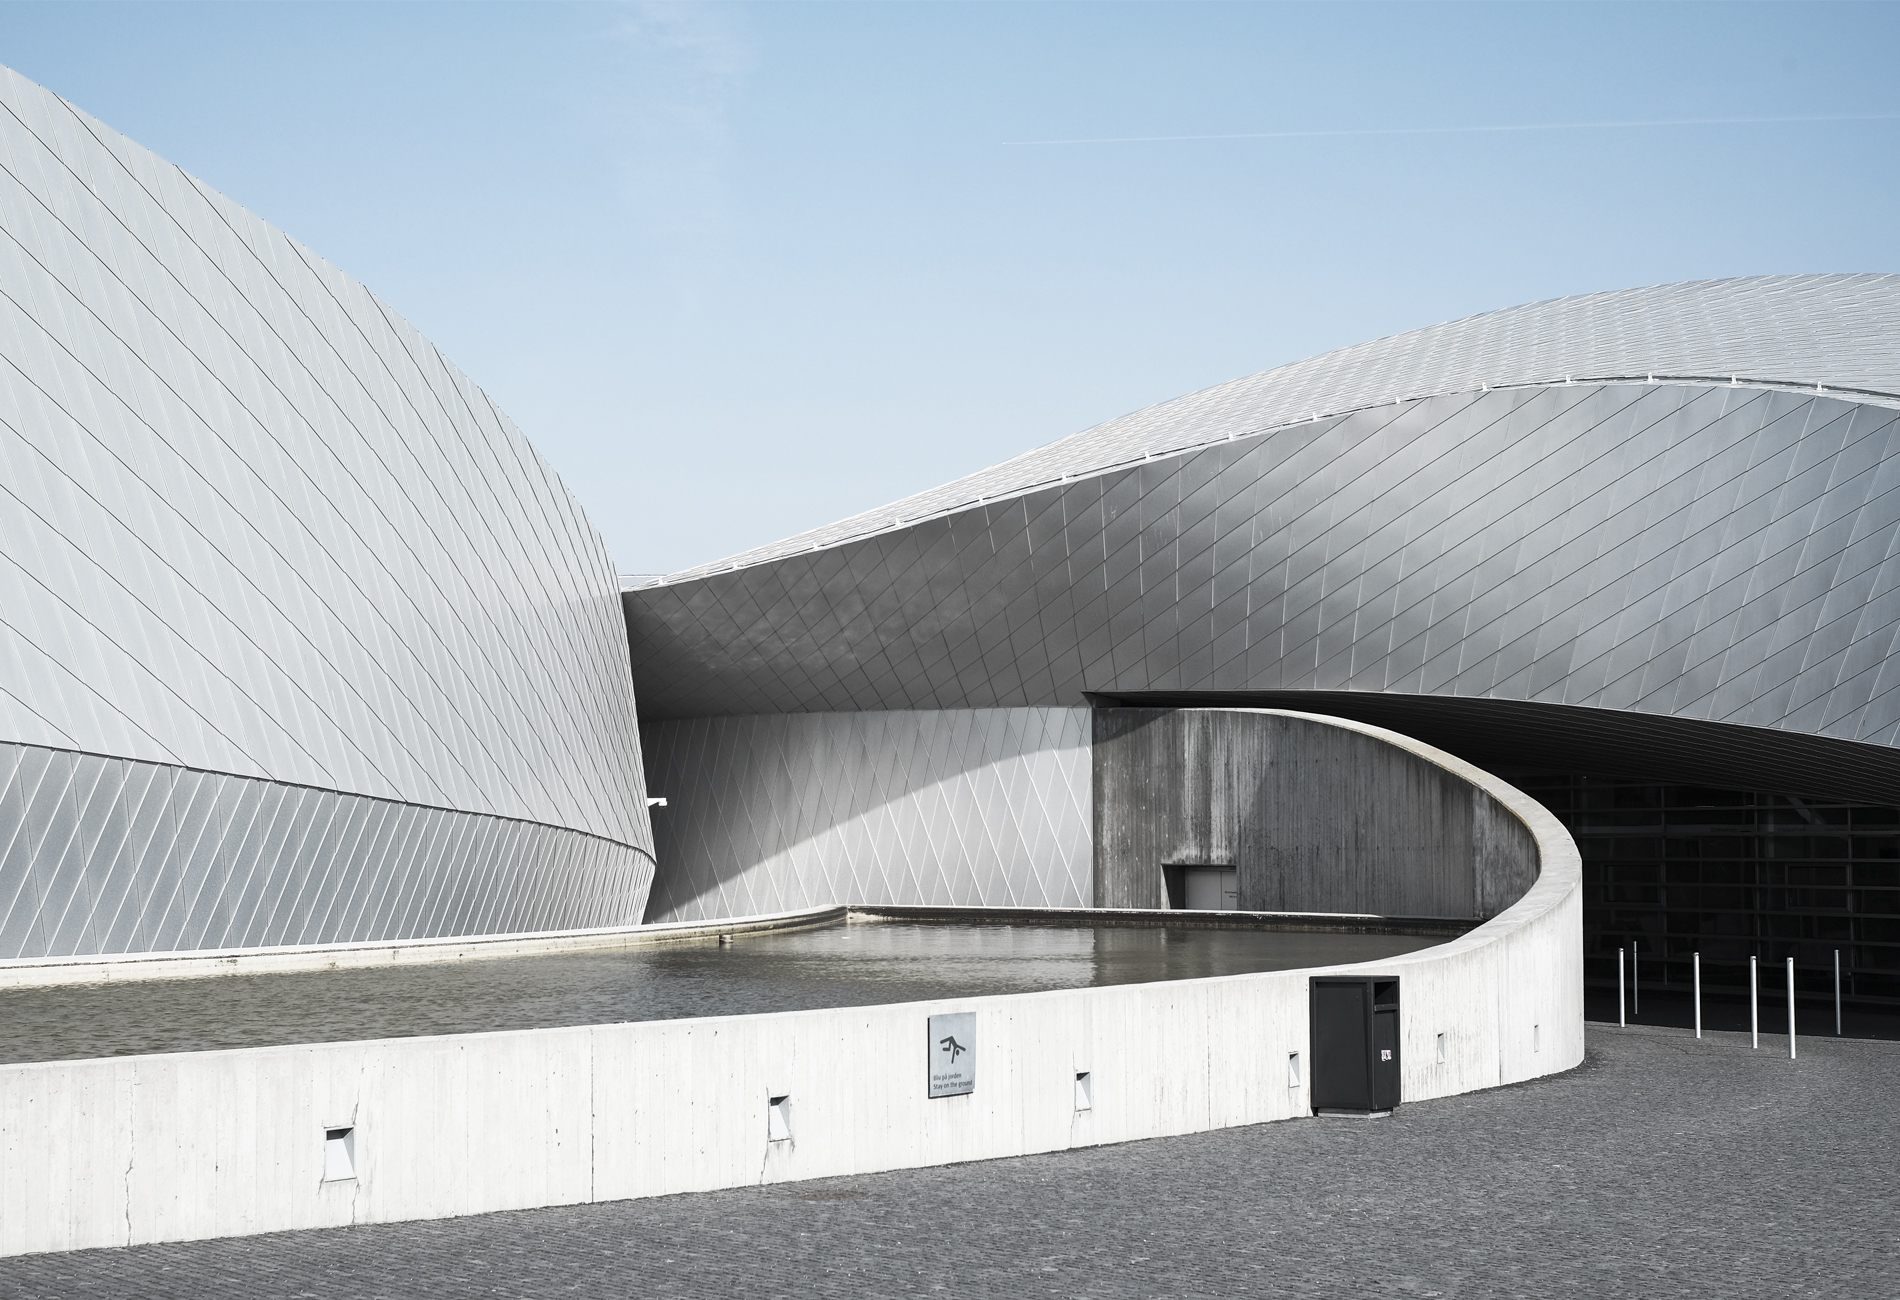 modern architecture of the aquarium of Copenhagen